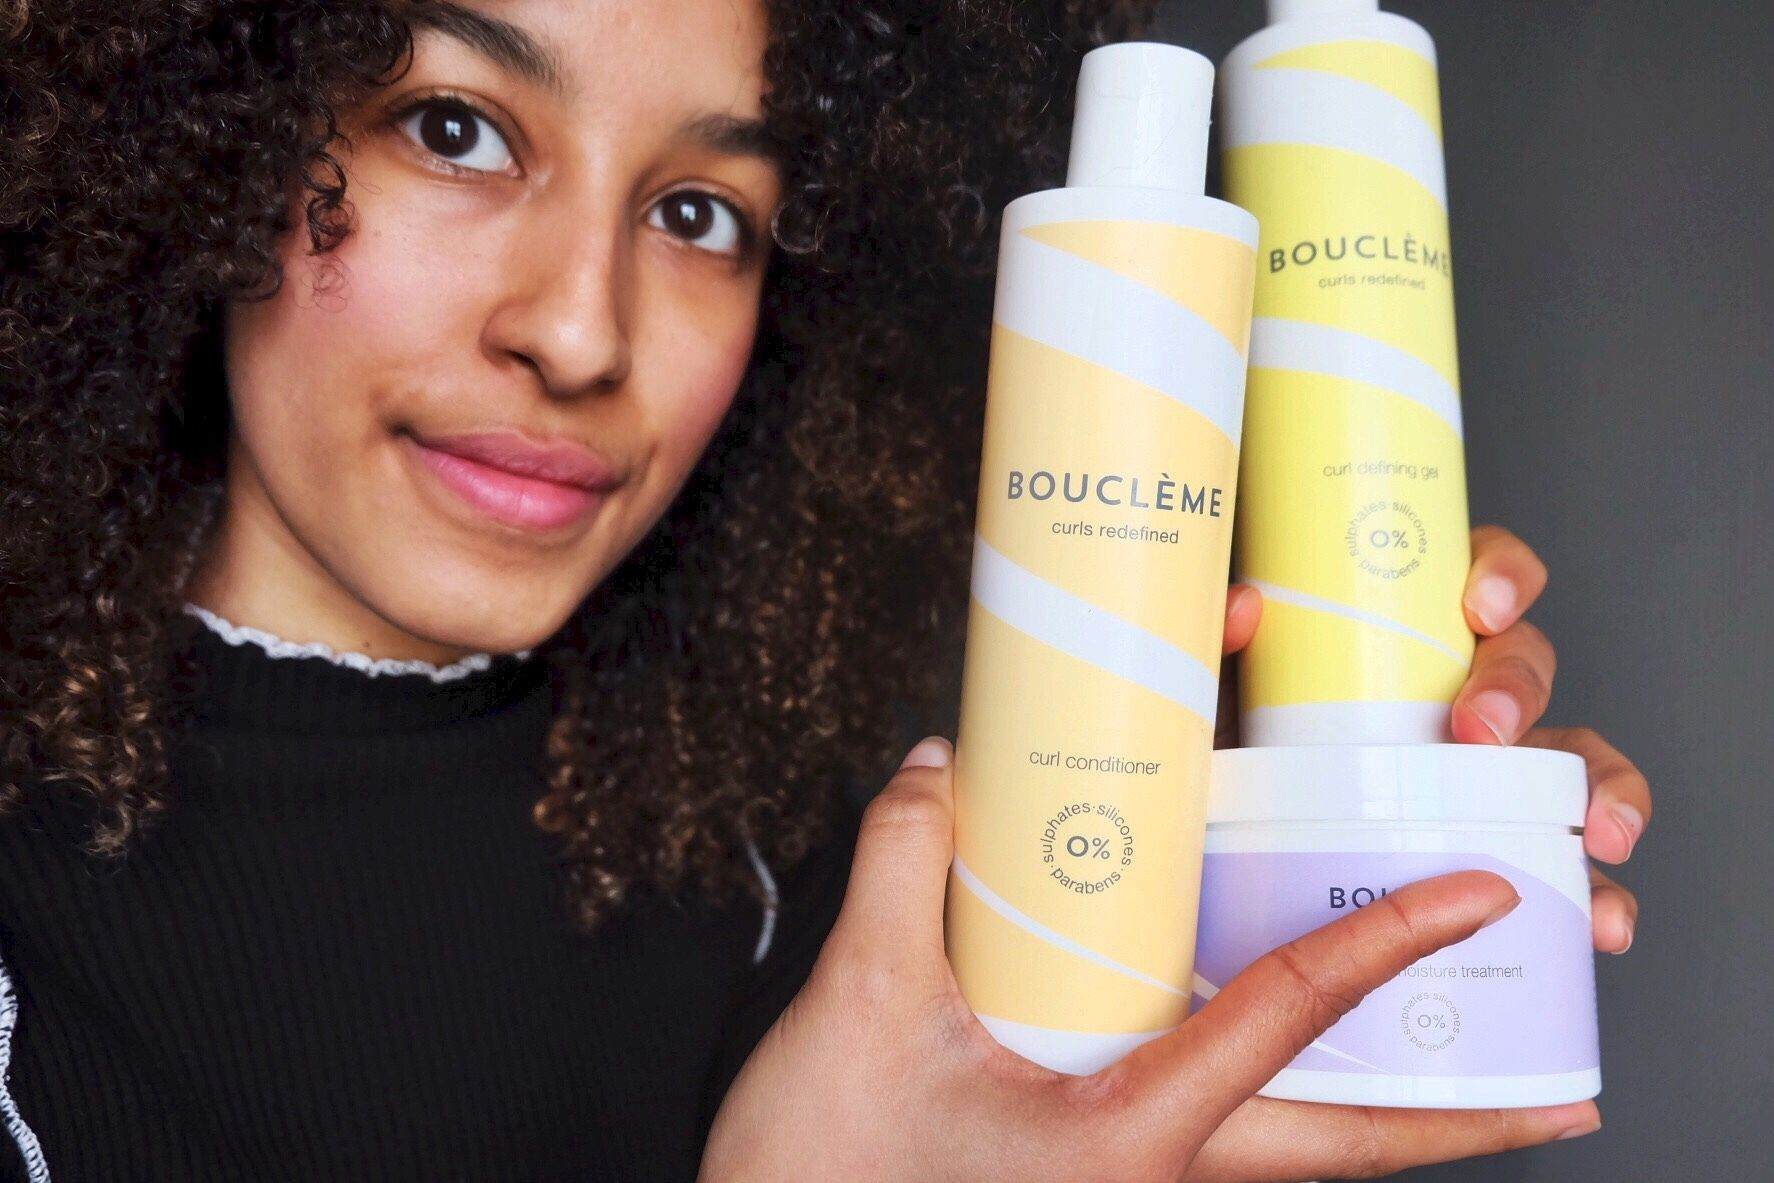 Curlygallal favourite hair care products